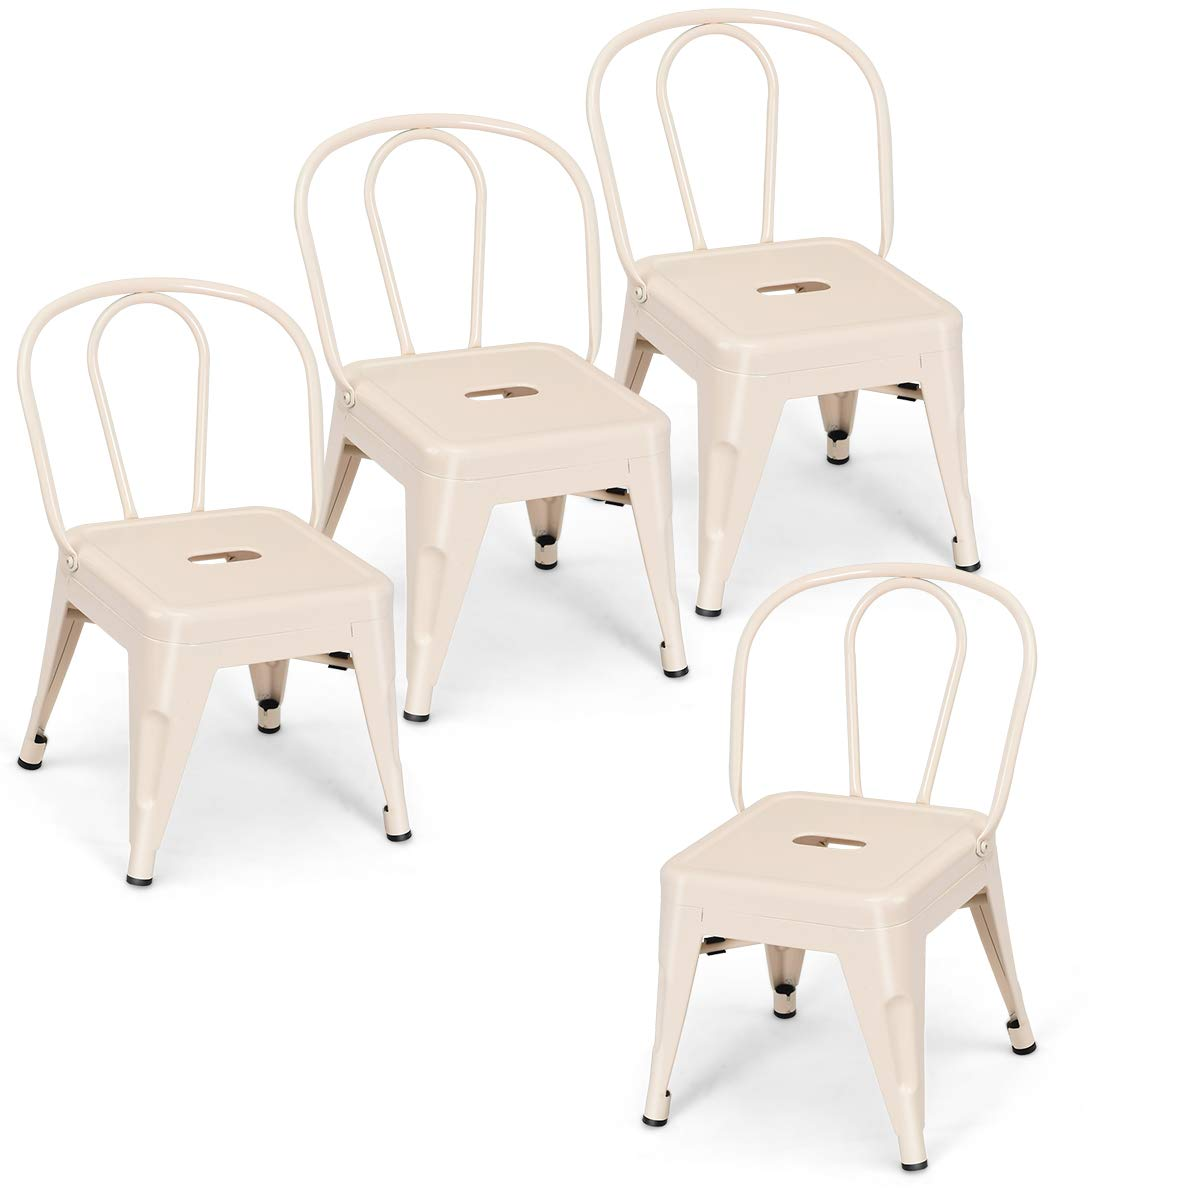 Costzon Set of 4 High Back Kids Metal Stool, Contour School Student Chair, Stackable for Indoor/Outdoor,Preschool, Daycare, Bedroom, Playroom, Iron Furniture Stool for Boys & Girls (Milky White) by Costzon